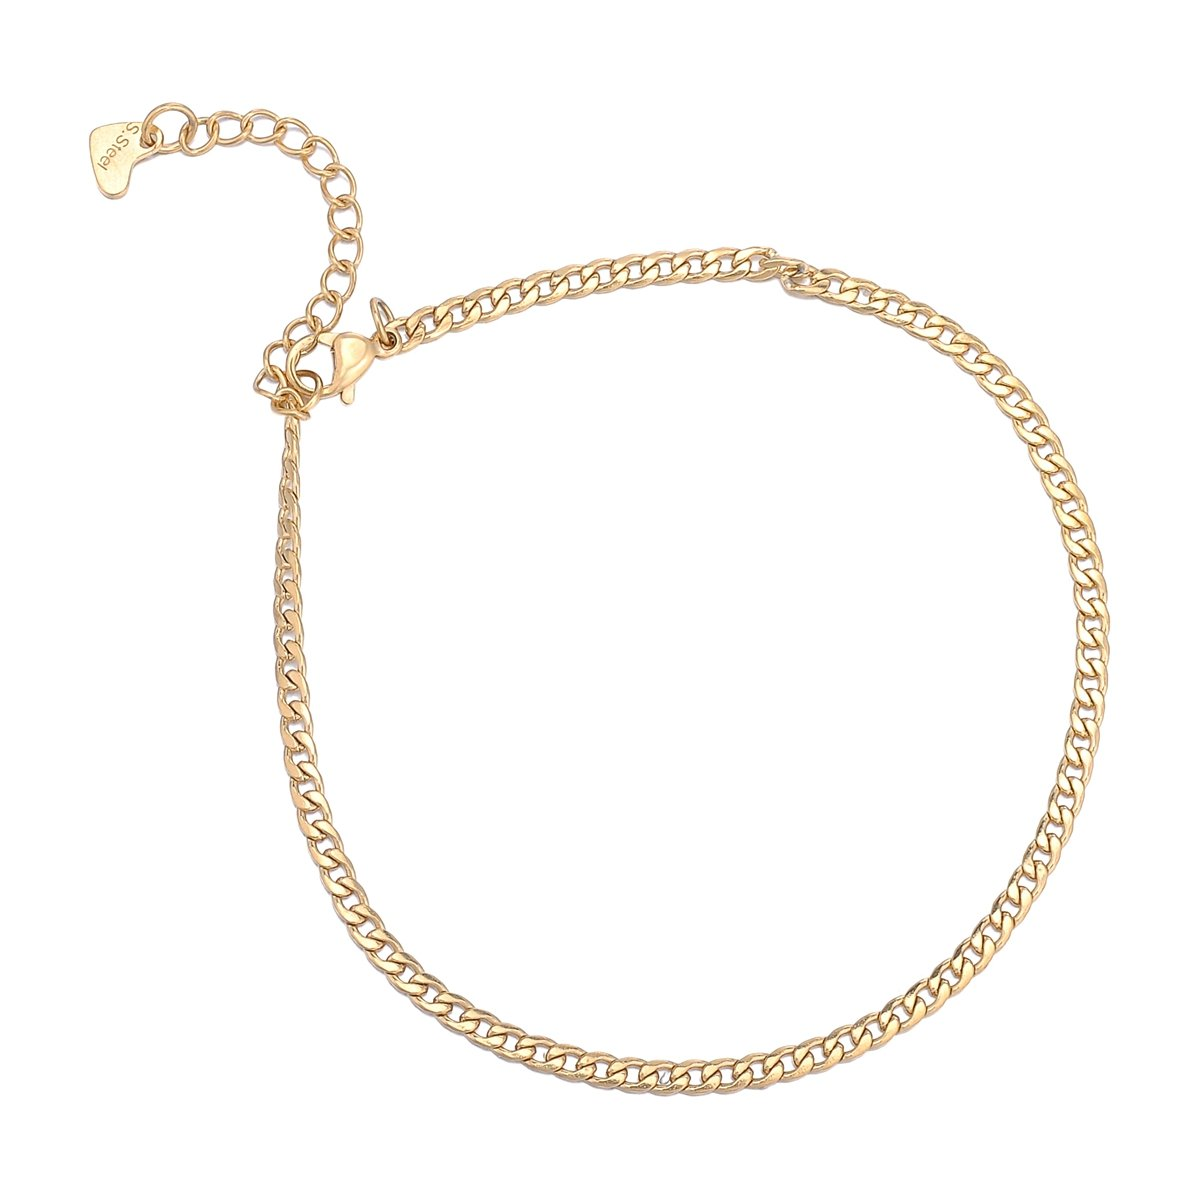 HooAMI Gold Palted Stainless Steel Anklet Curb Chain Ankle Bracelet for Women & Girls Terrific-Young BETY134484